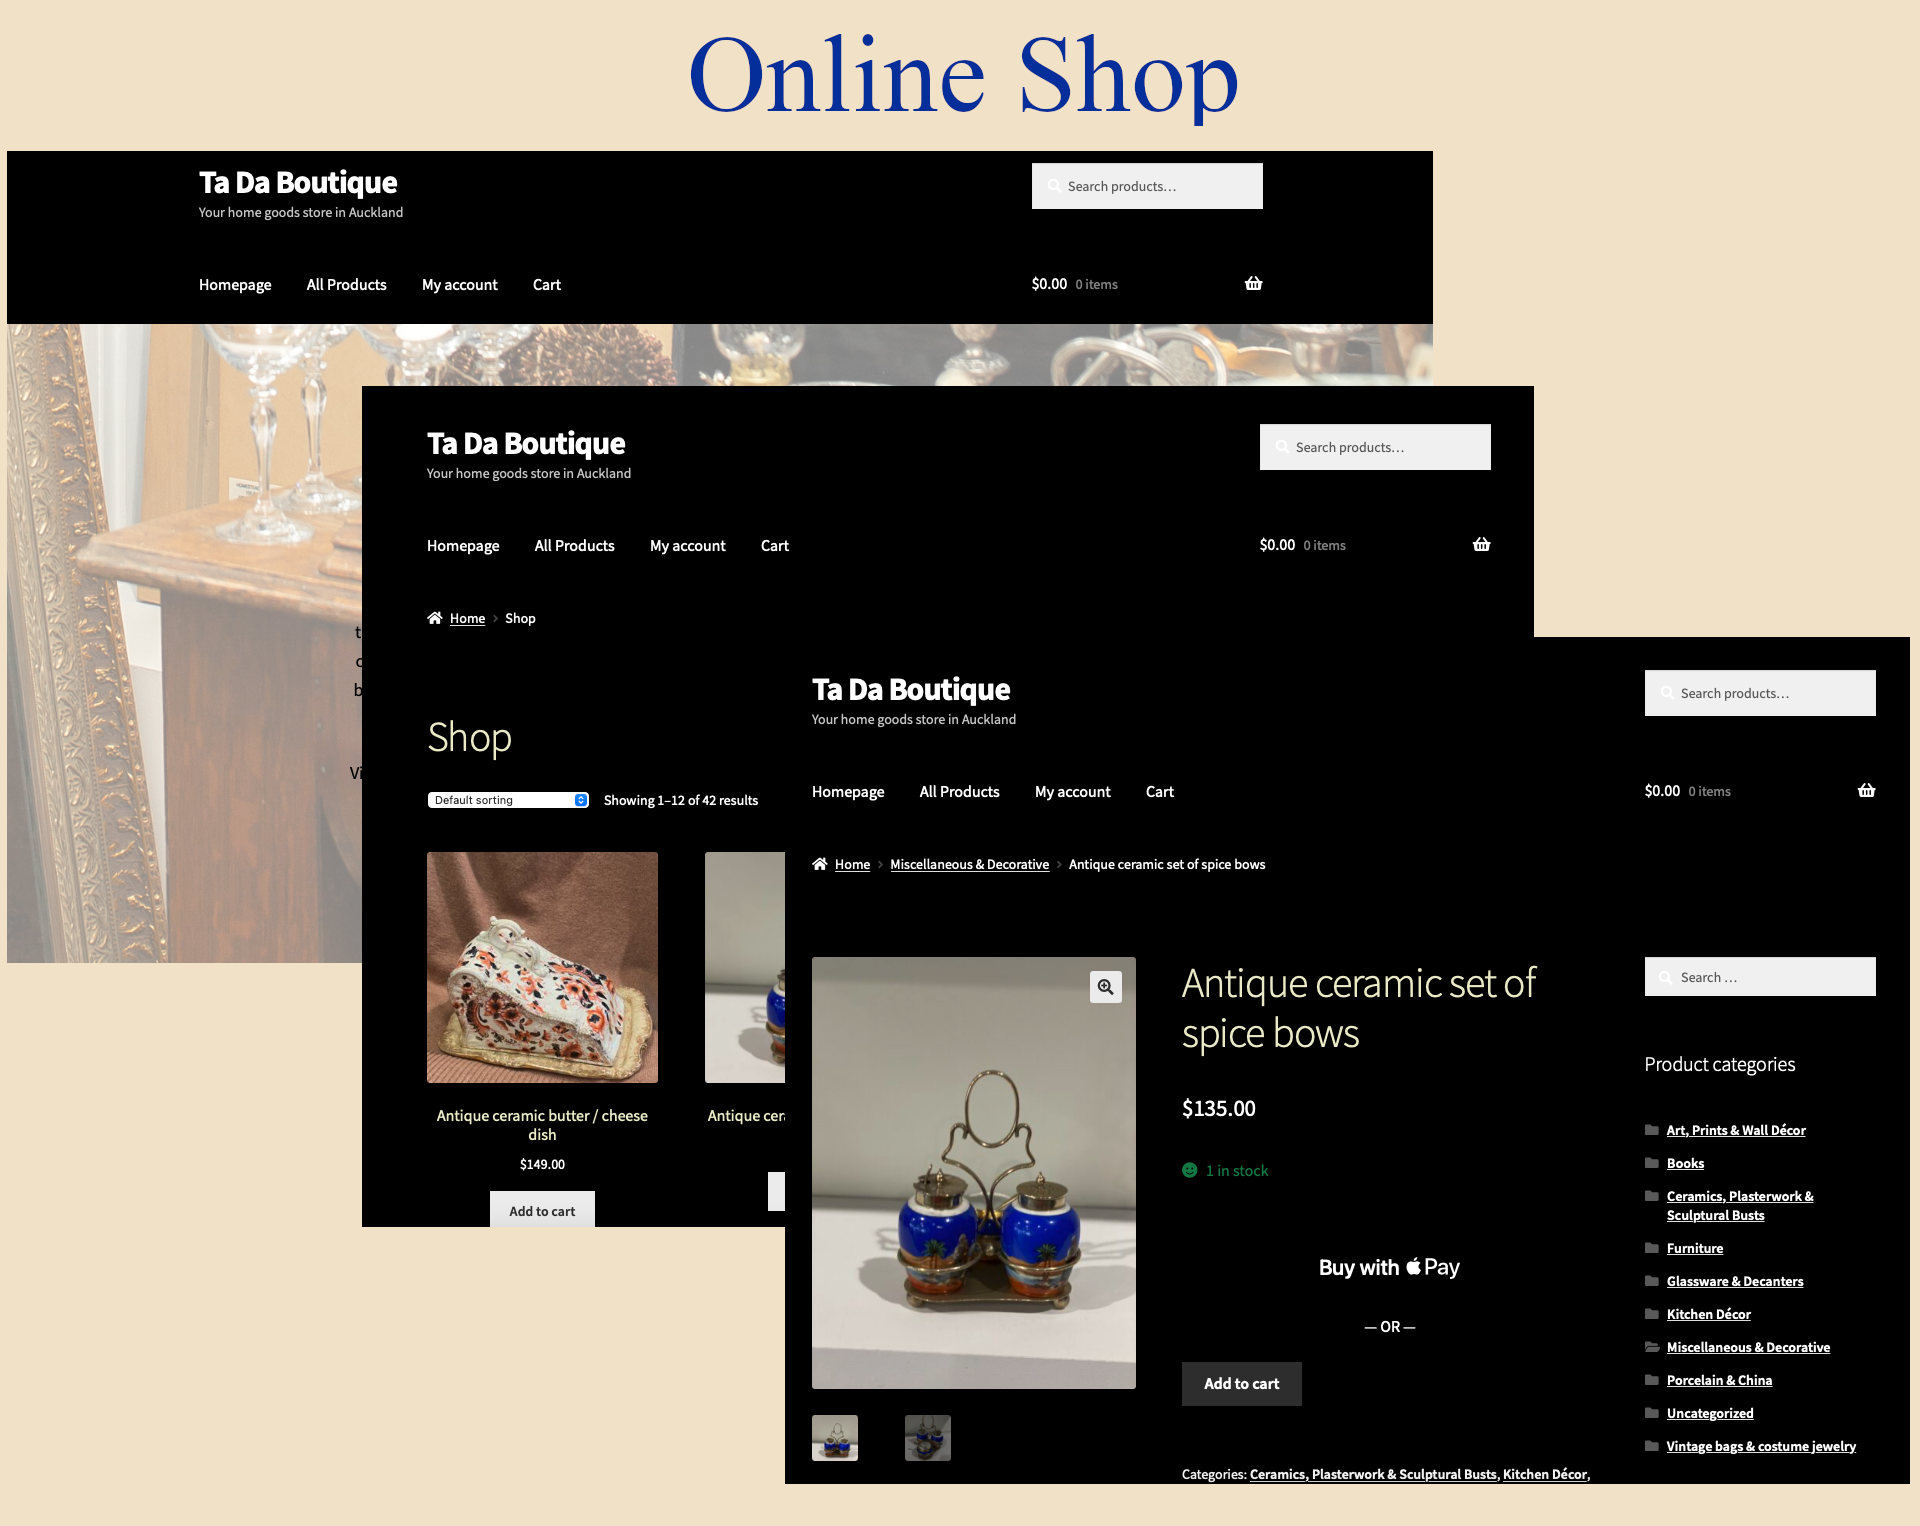 Online Shop with Facebook Store